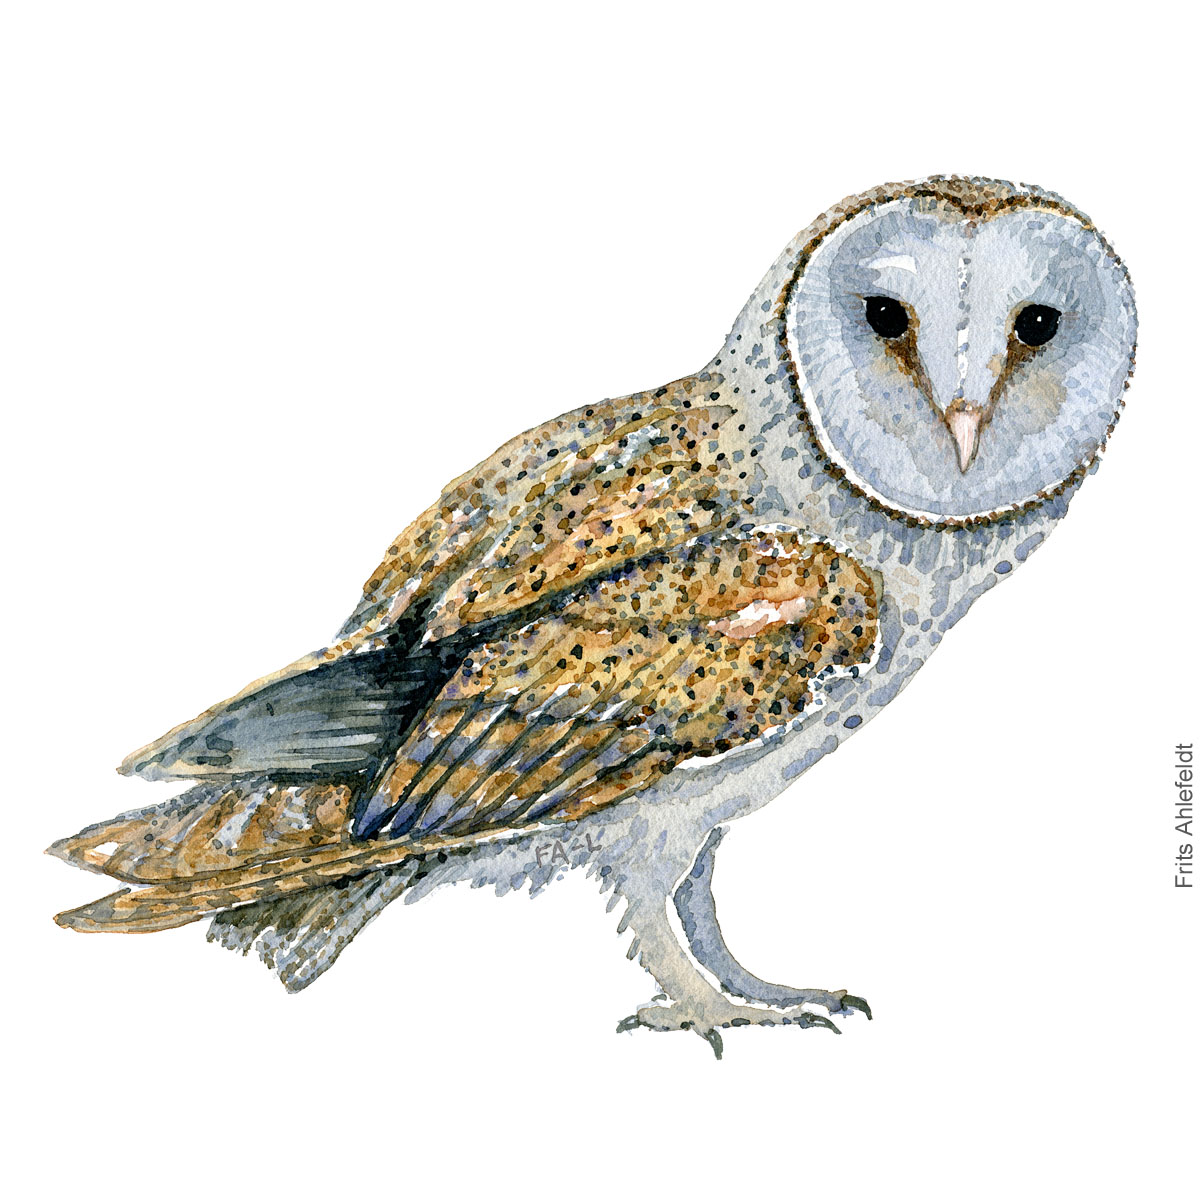 Sloerugle - Barnowl - Bird watercolor painting. Artwork by Frits Ahlefeldt. Fugle akvarel